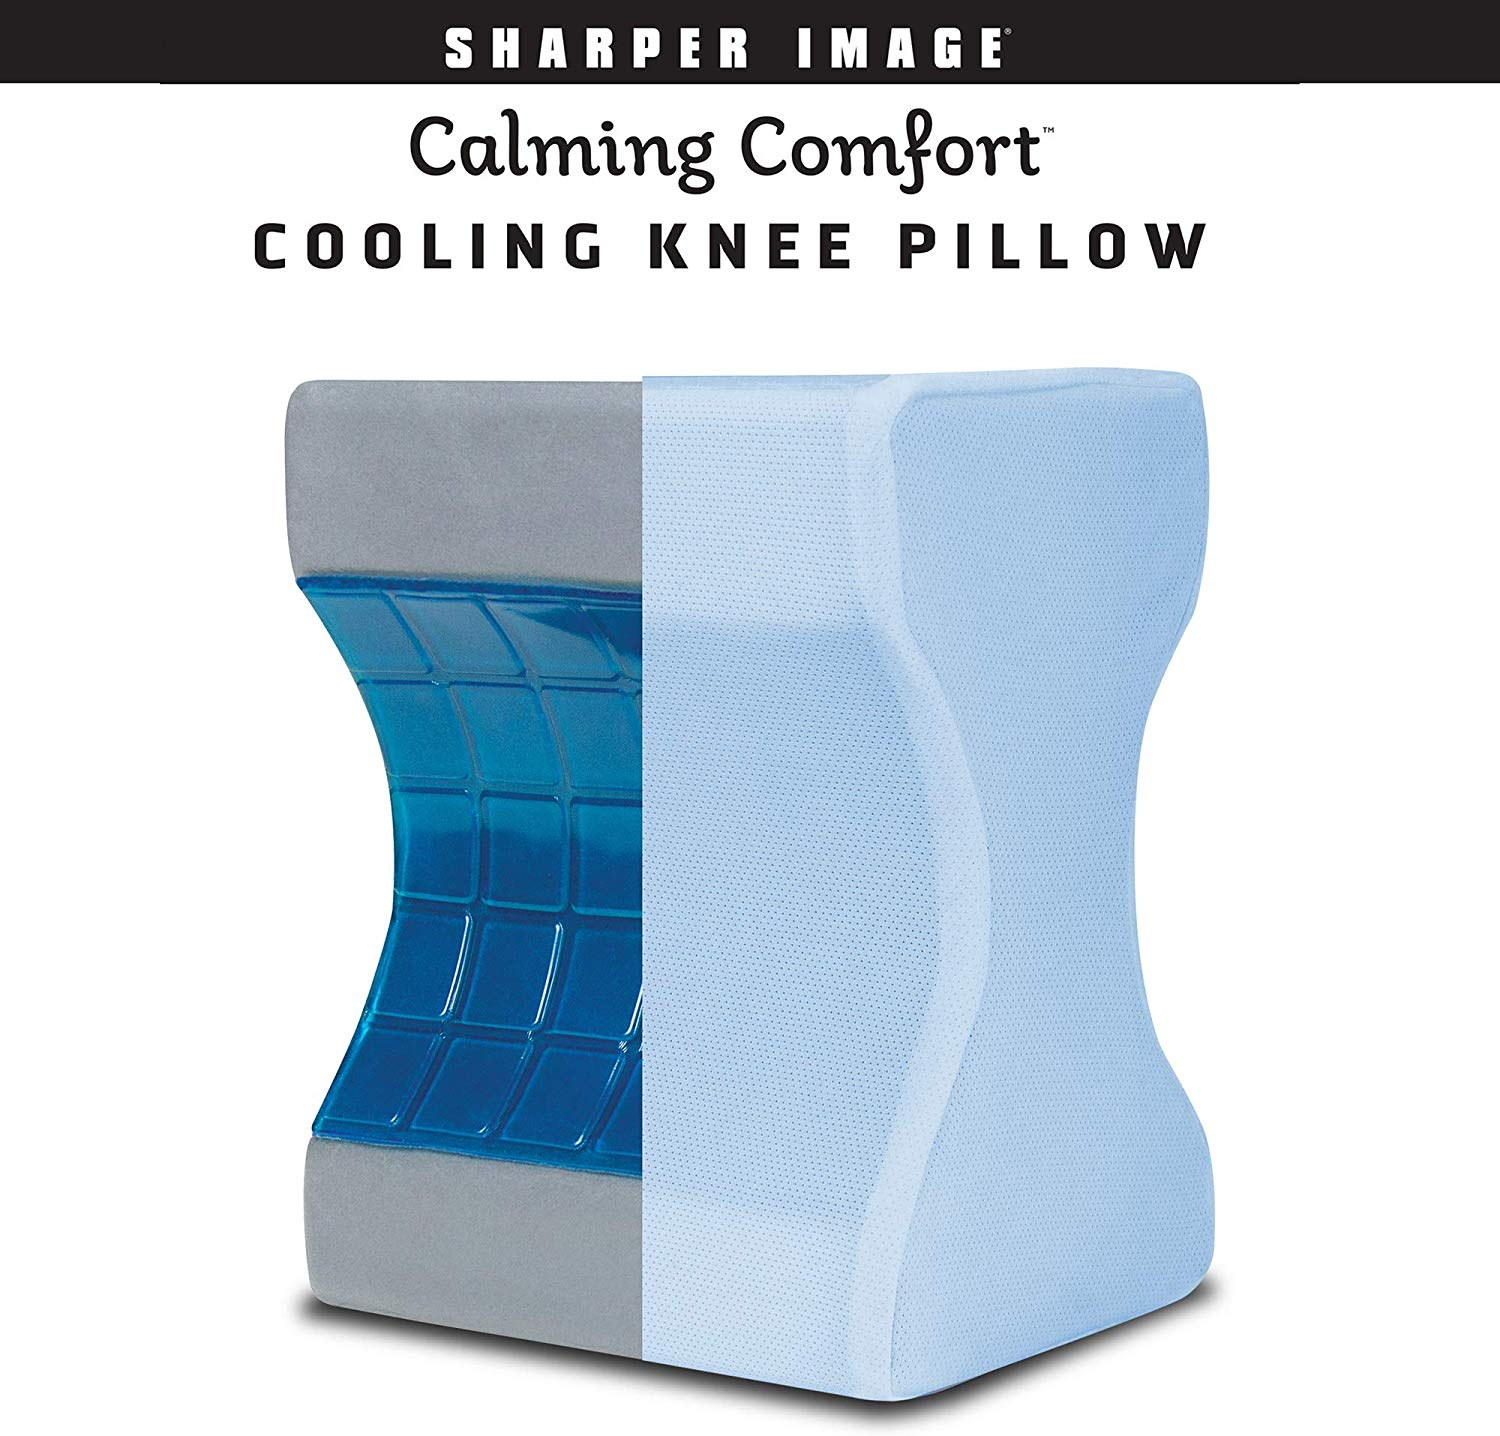 Calming Comfort Best Knee Pillow review by www.dailysleep.org